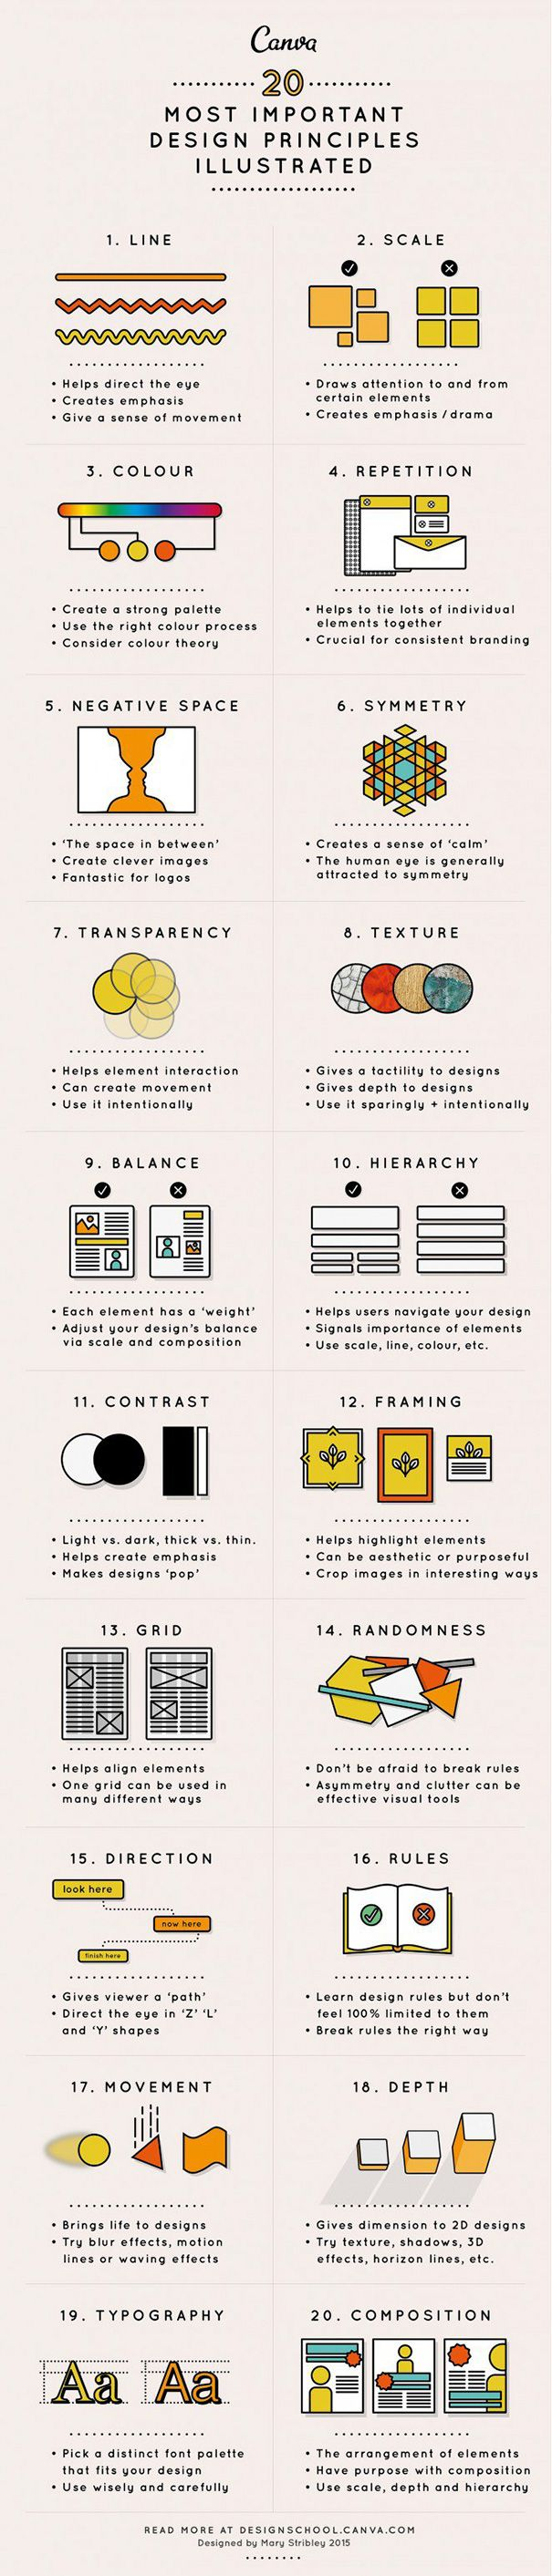 20 Tips To Help Become A Good Graphic Designer - Imgur